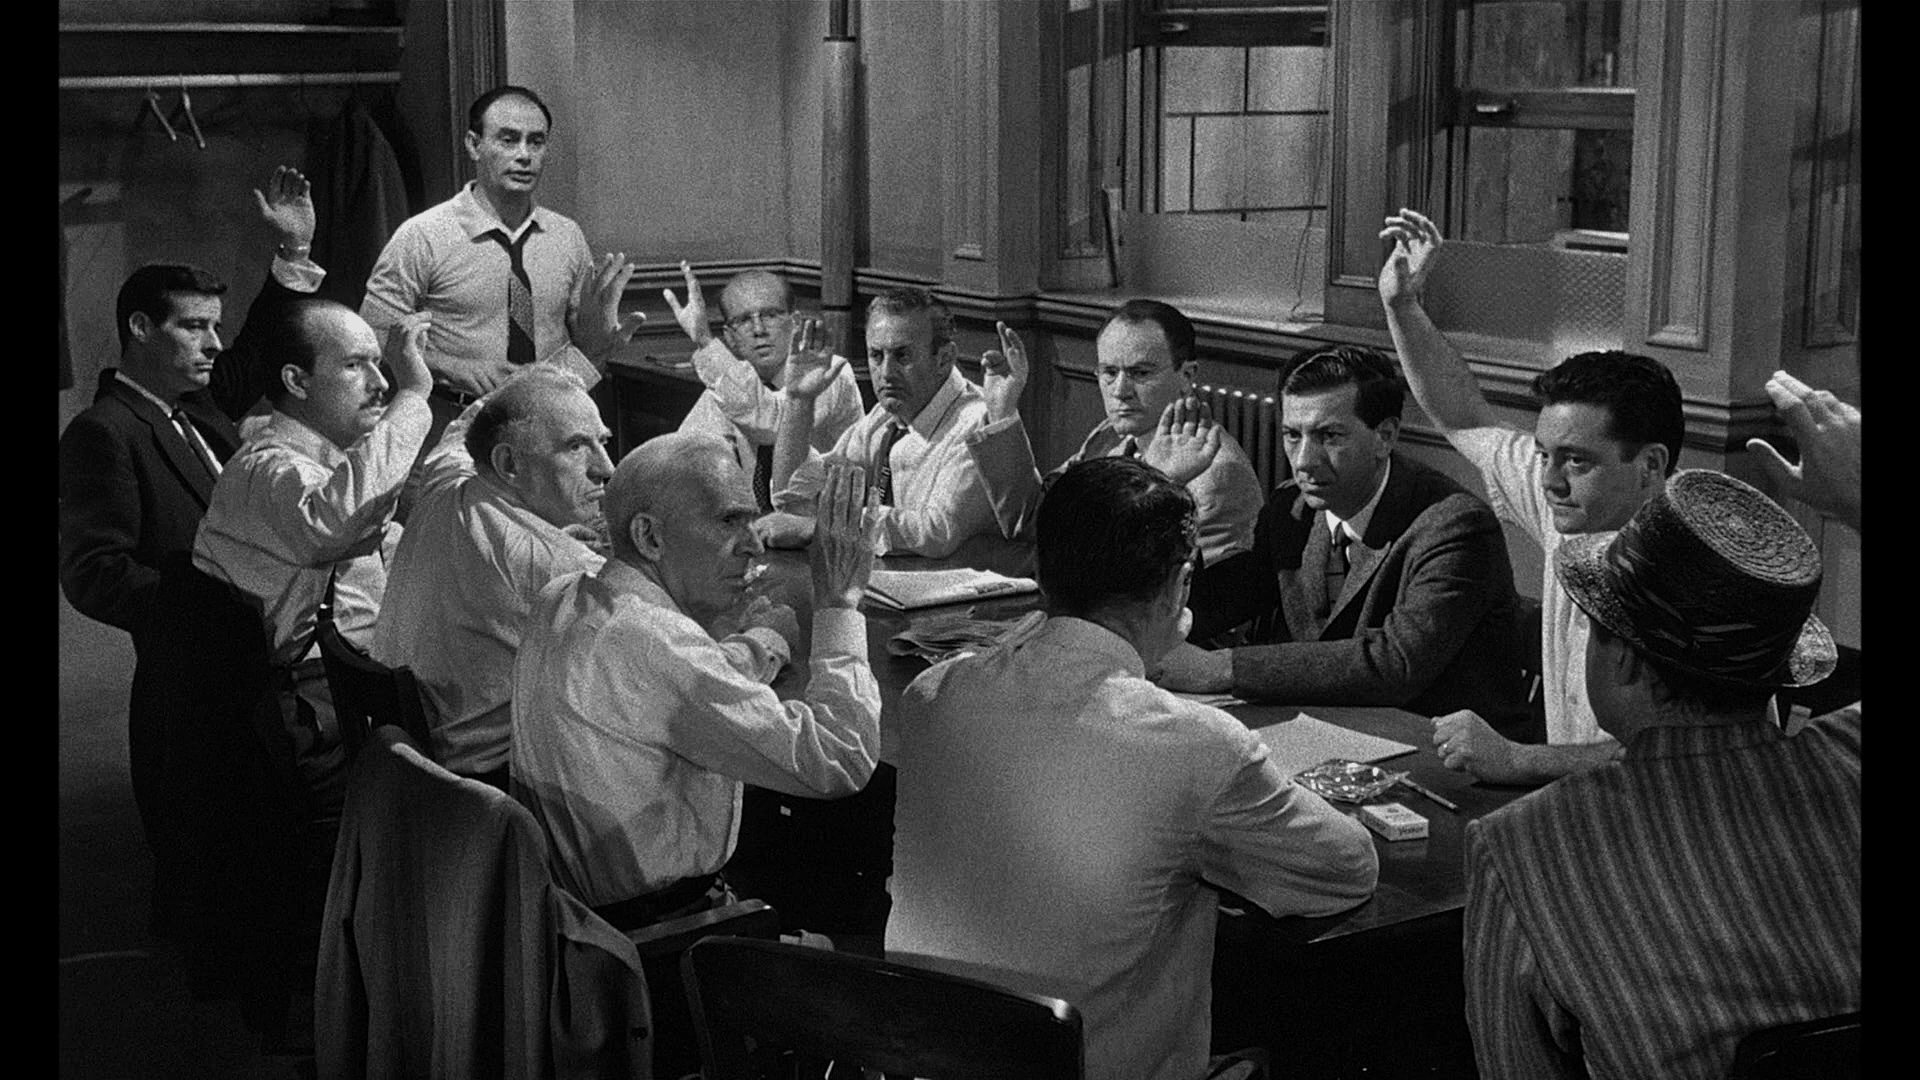 an analysis of the group dynamics in 12 angry men a film classic of 1957